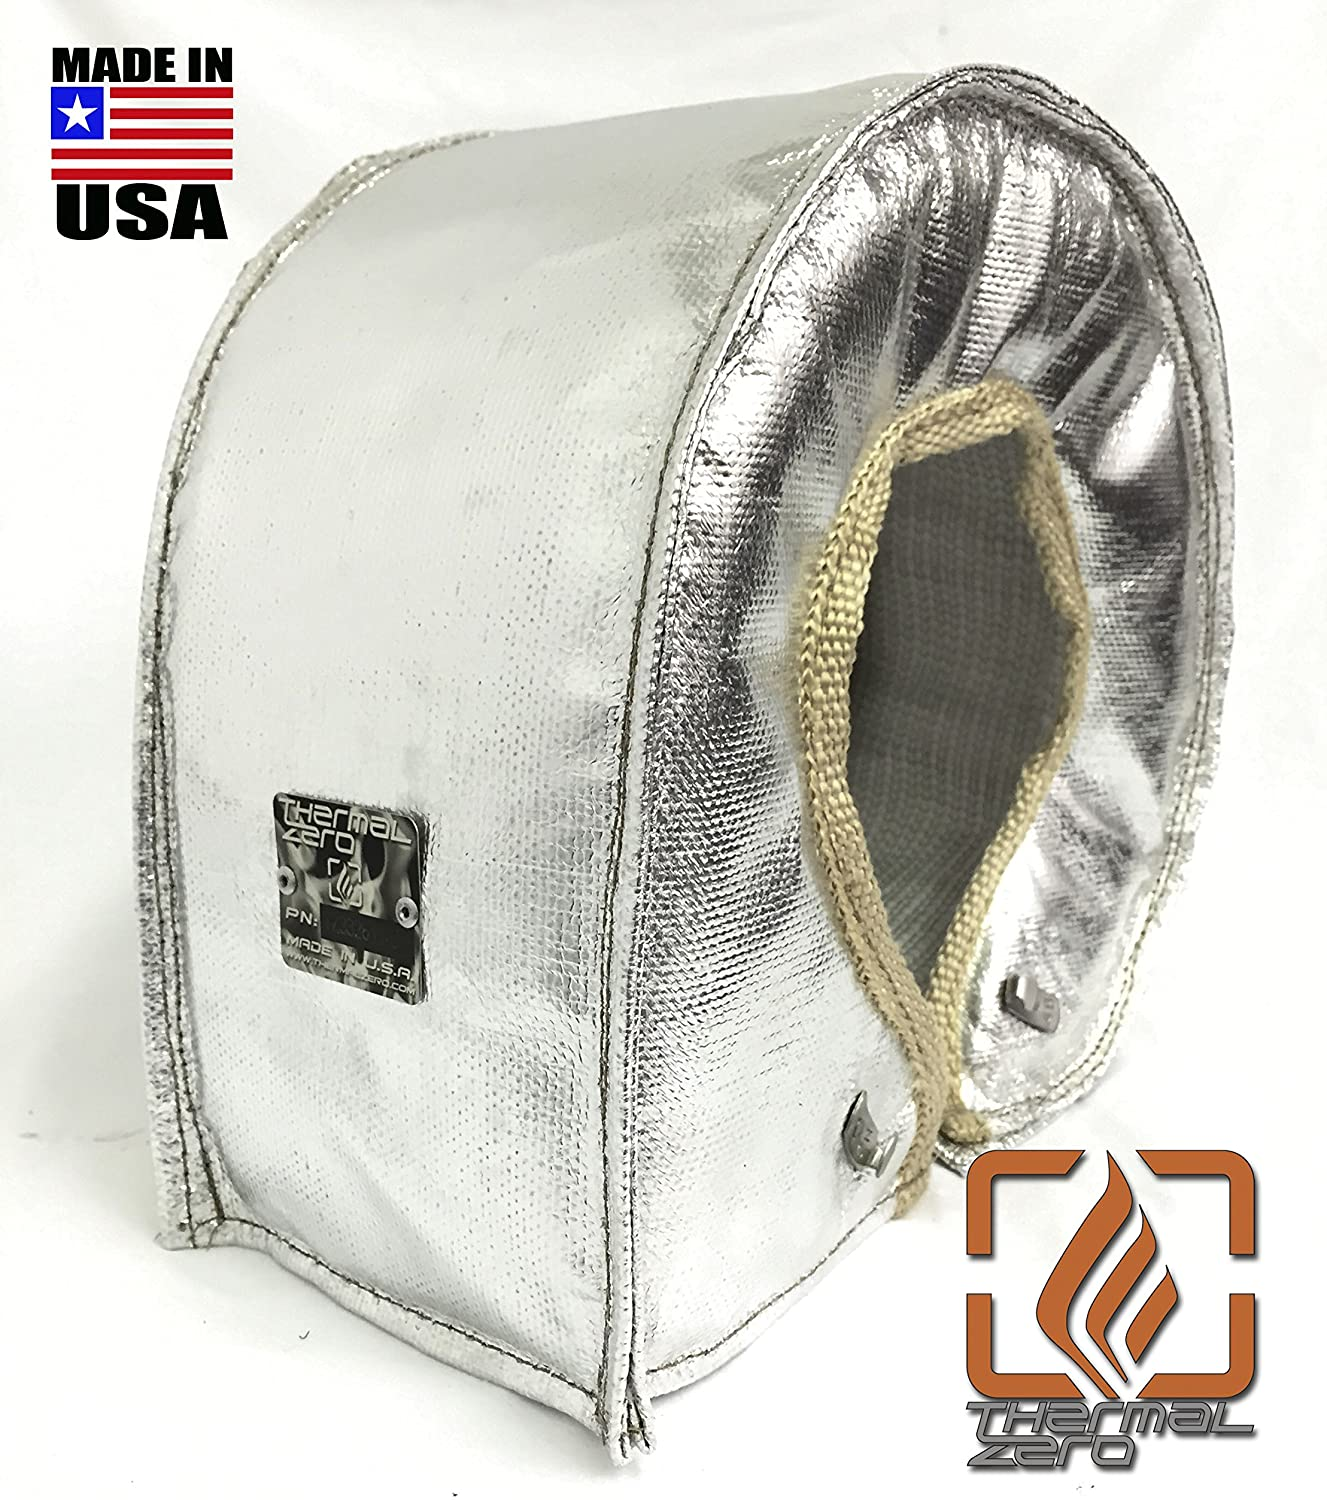 Thermal Zero CHROME/SILVER UNIVERSAL T6 Turbo Blanket Holds 2400 degrees. MADE IN USA unlike the rest. Fits most T6 turbochargers including Garrett, Precision, Turbonetics DETROIT DIESEL, CUMMINS